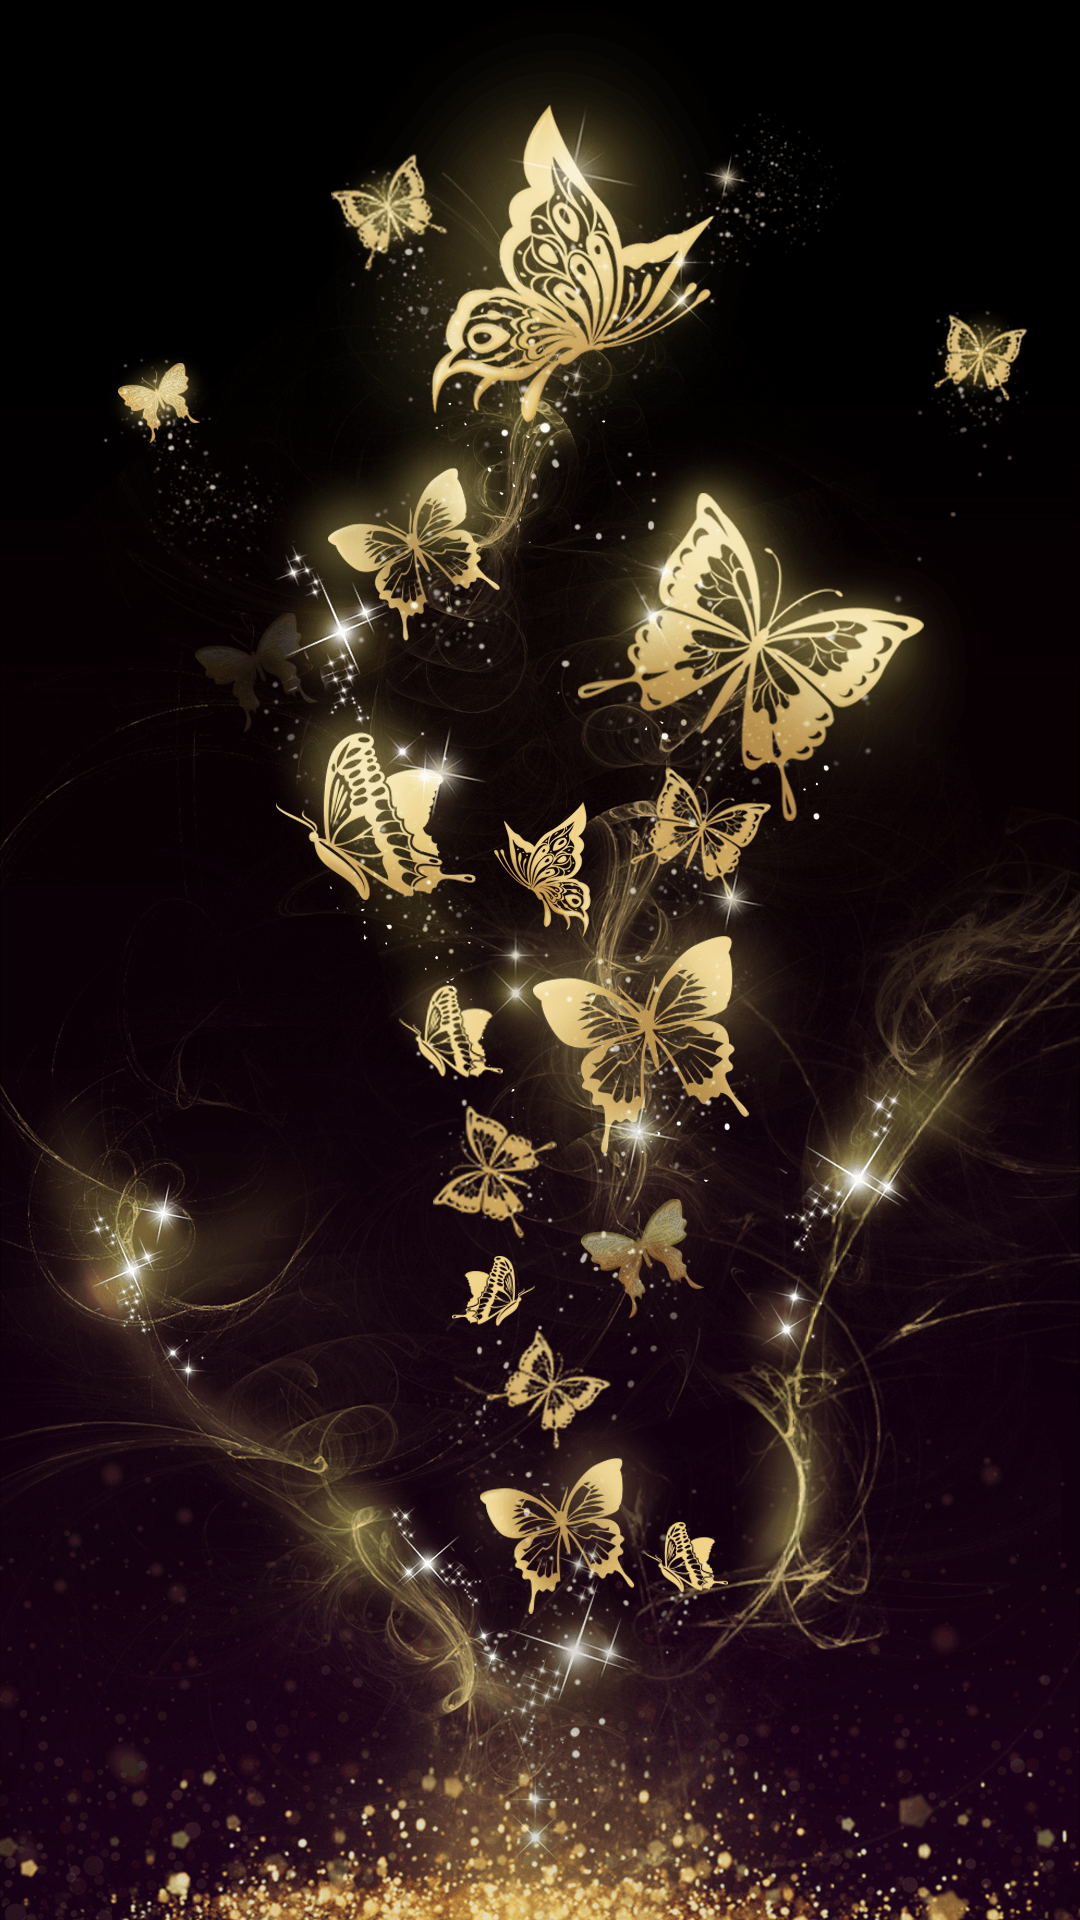 Gold And Black Butterfly Wallpapers Top Free Gold And Black Butterfly Backgrounds Wallpaperaccess